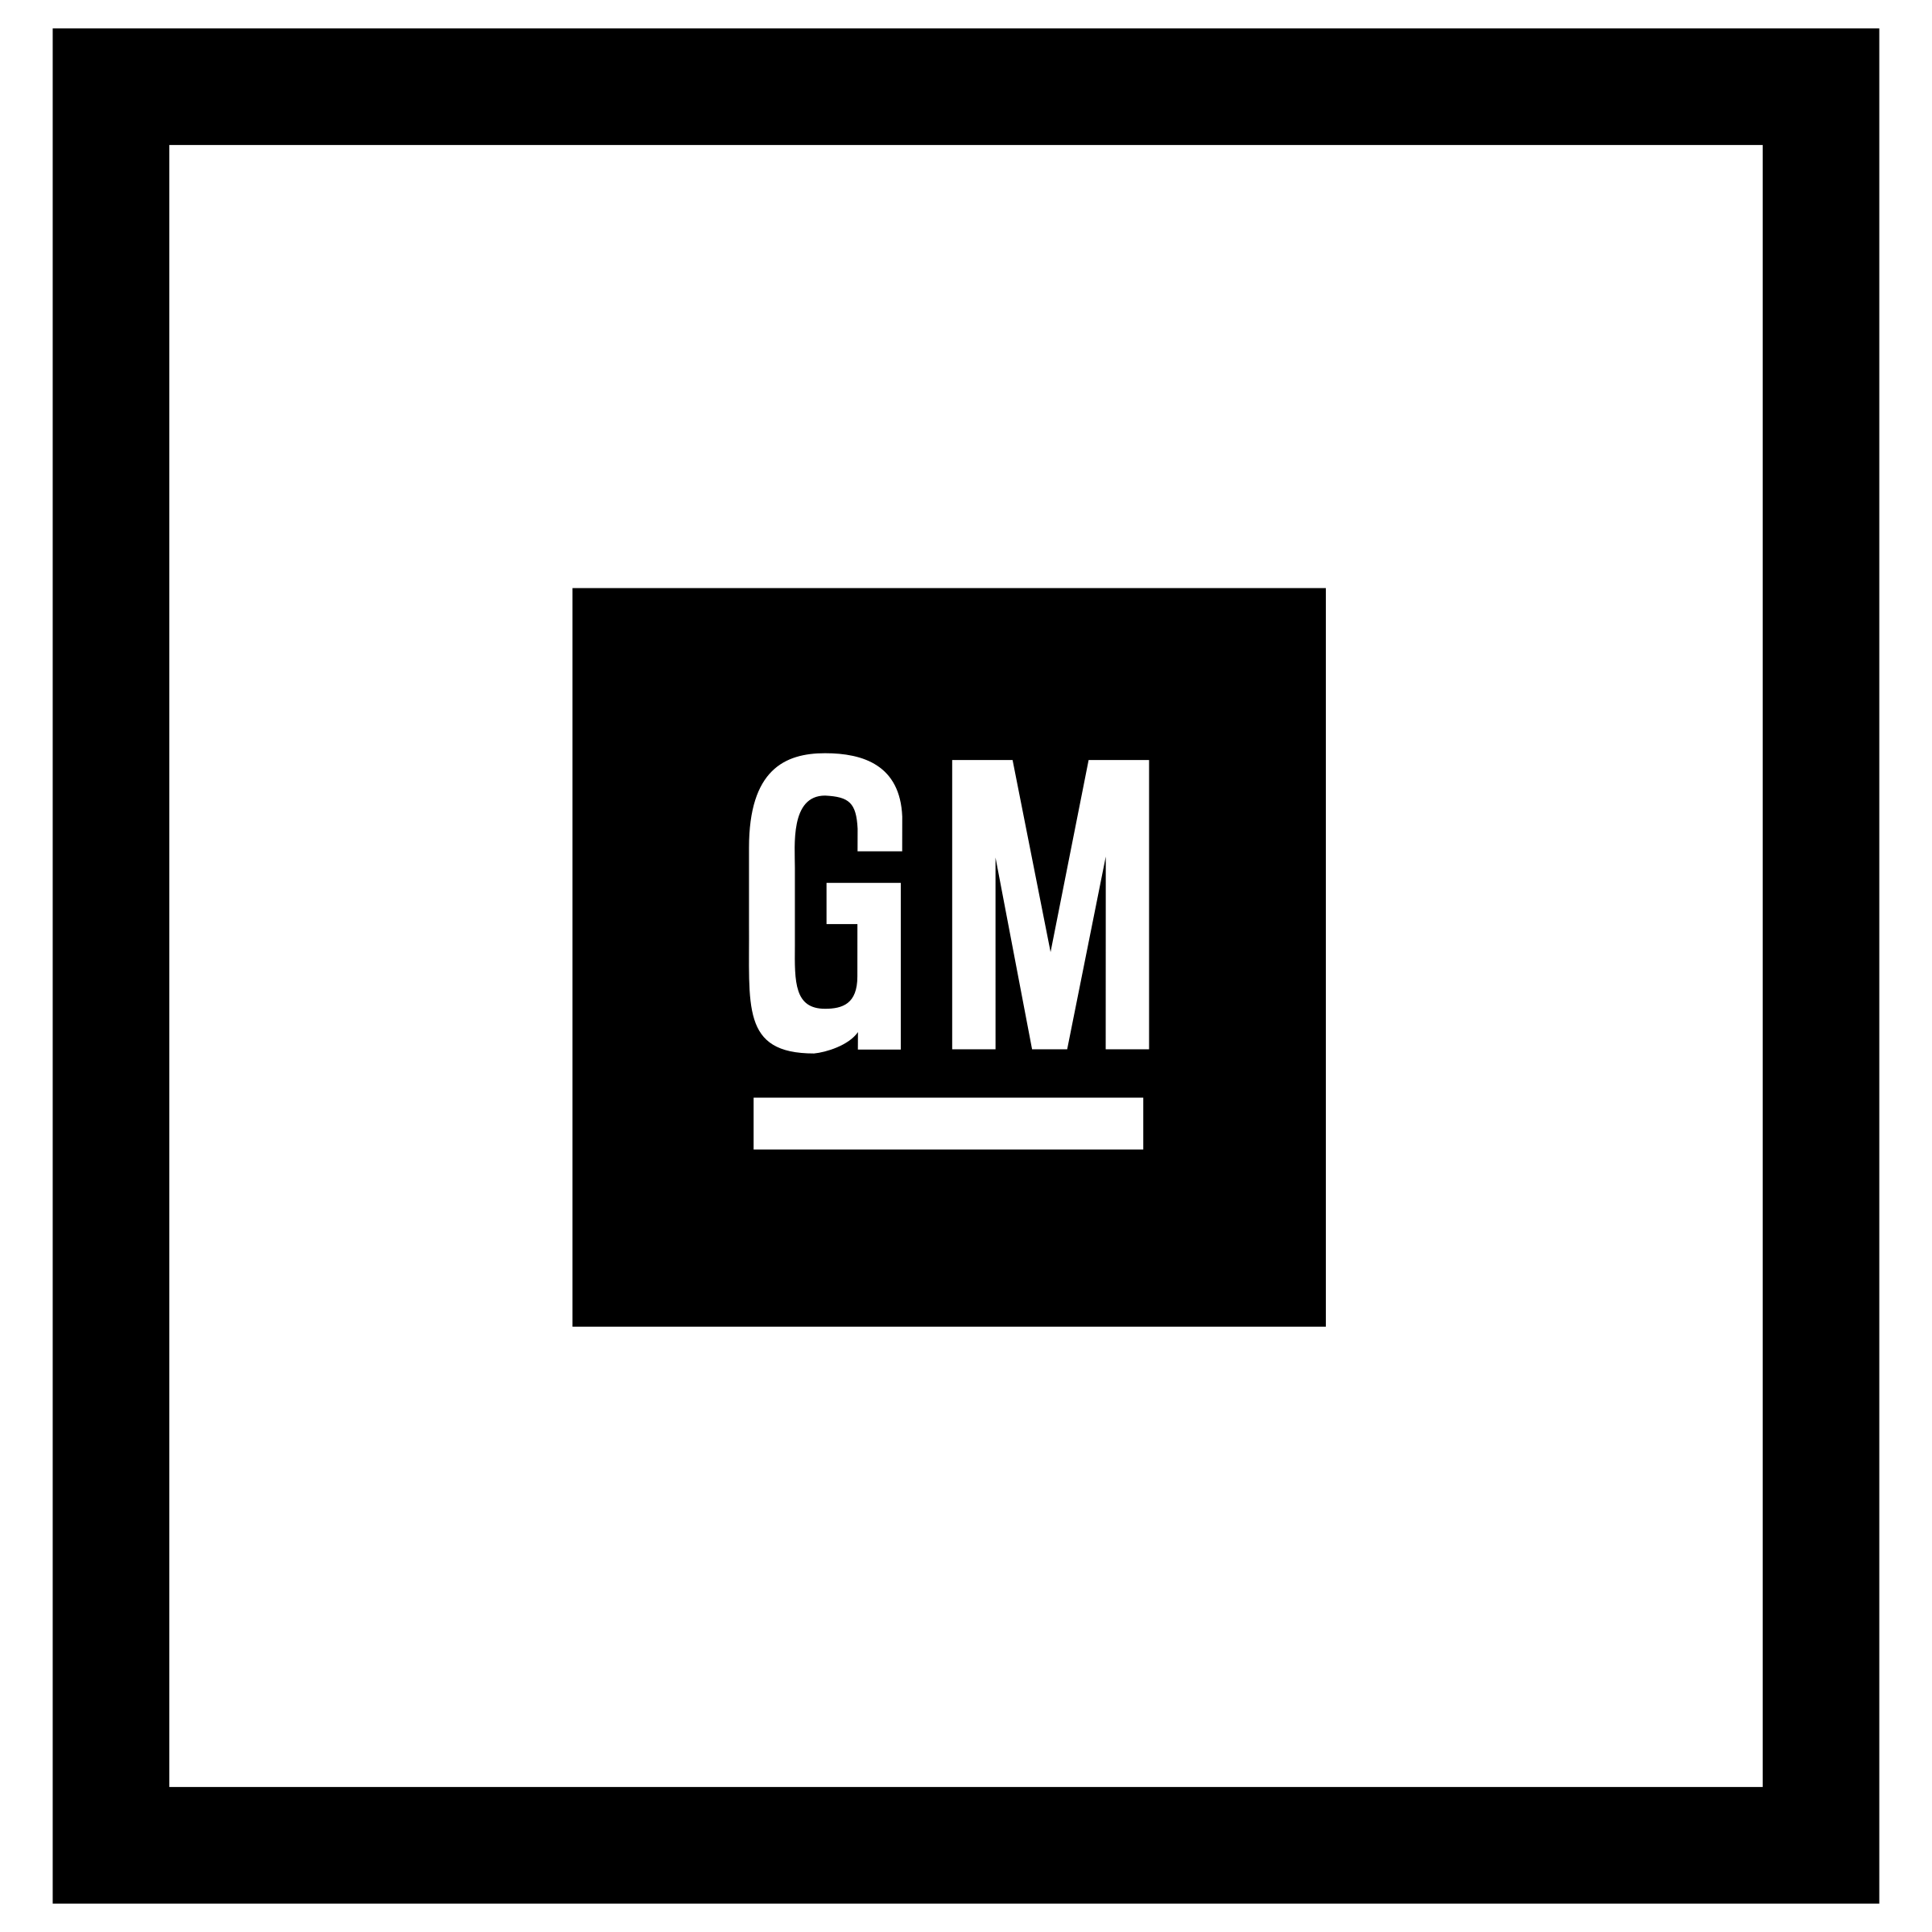 GM Logo PNG Transparent & SVG Vector.